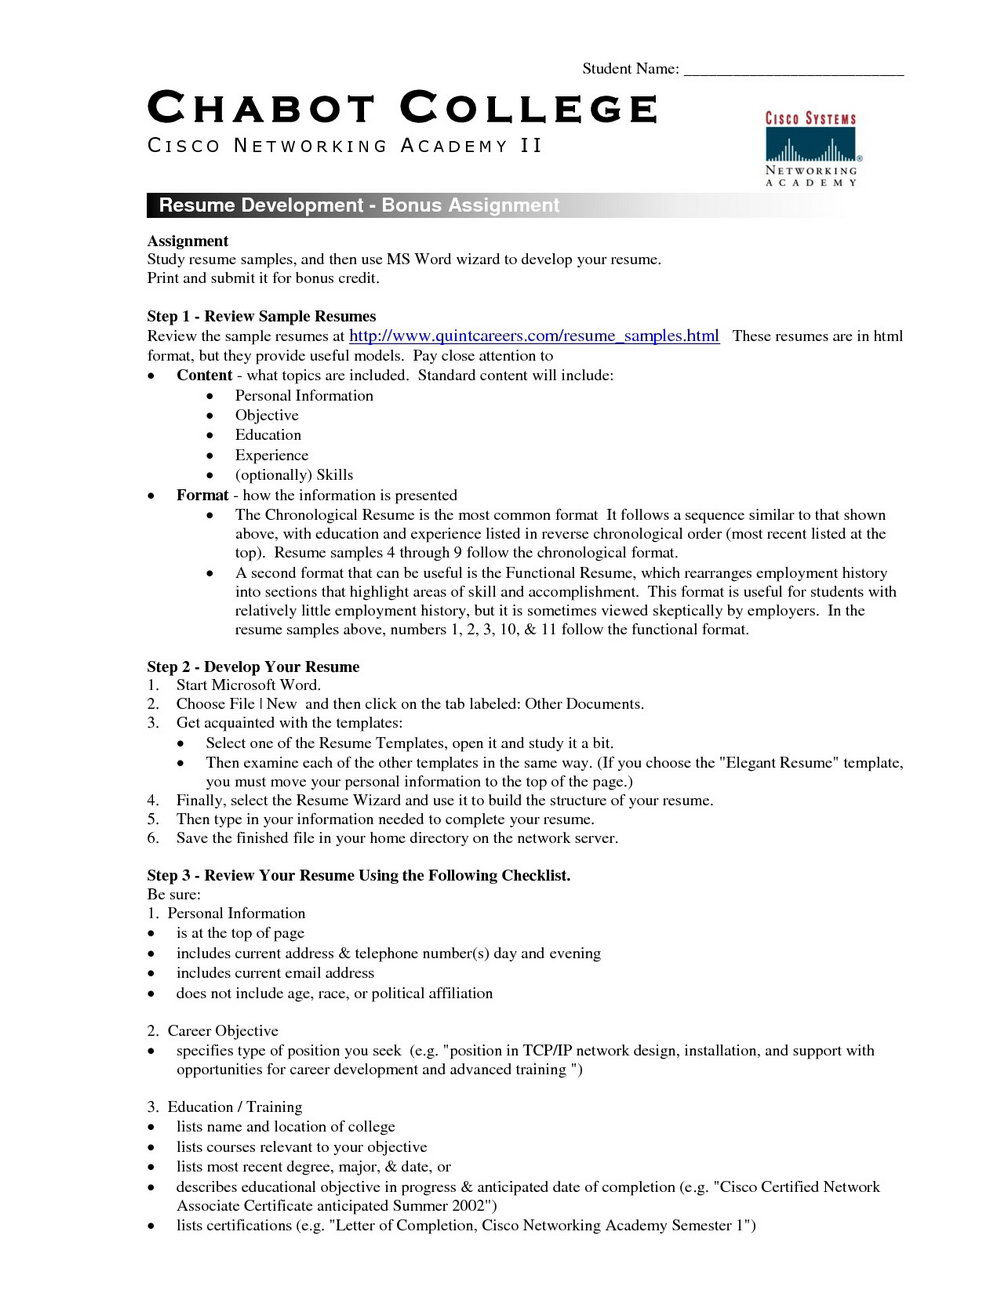 Free Resume Templates Word Download 2018